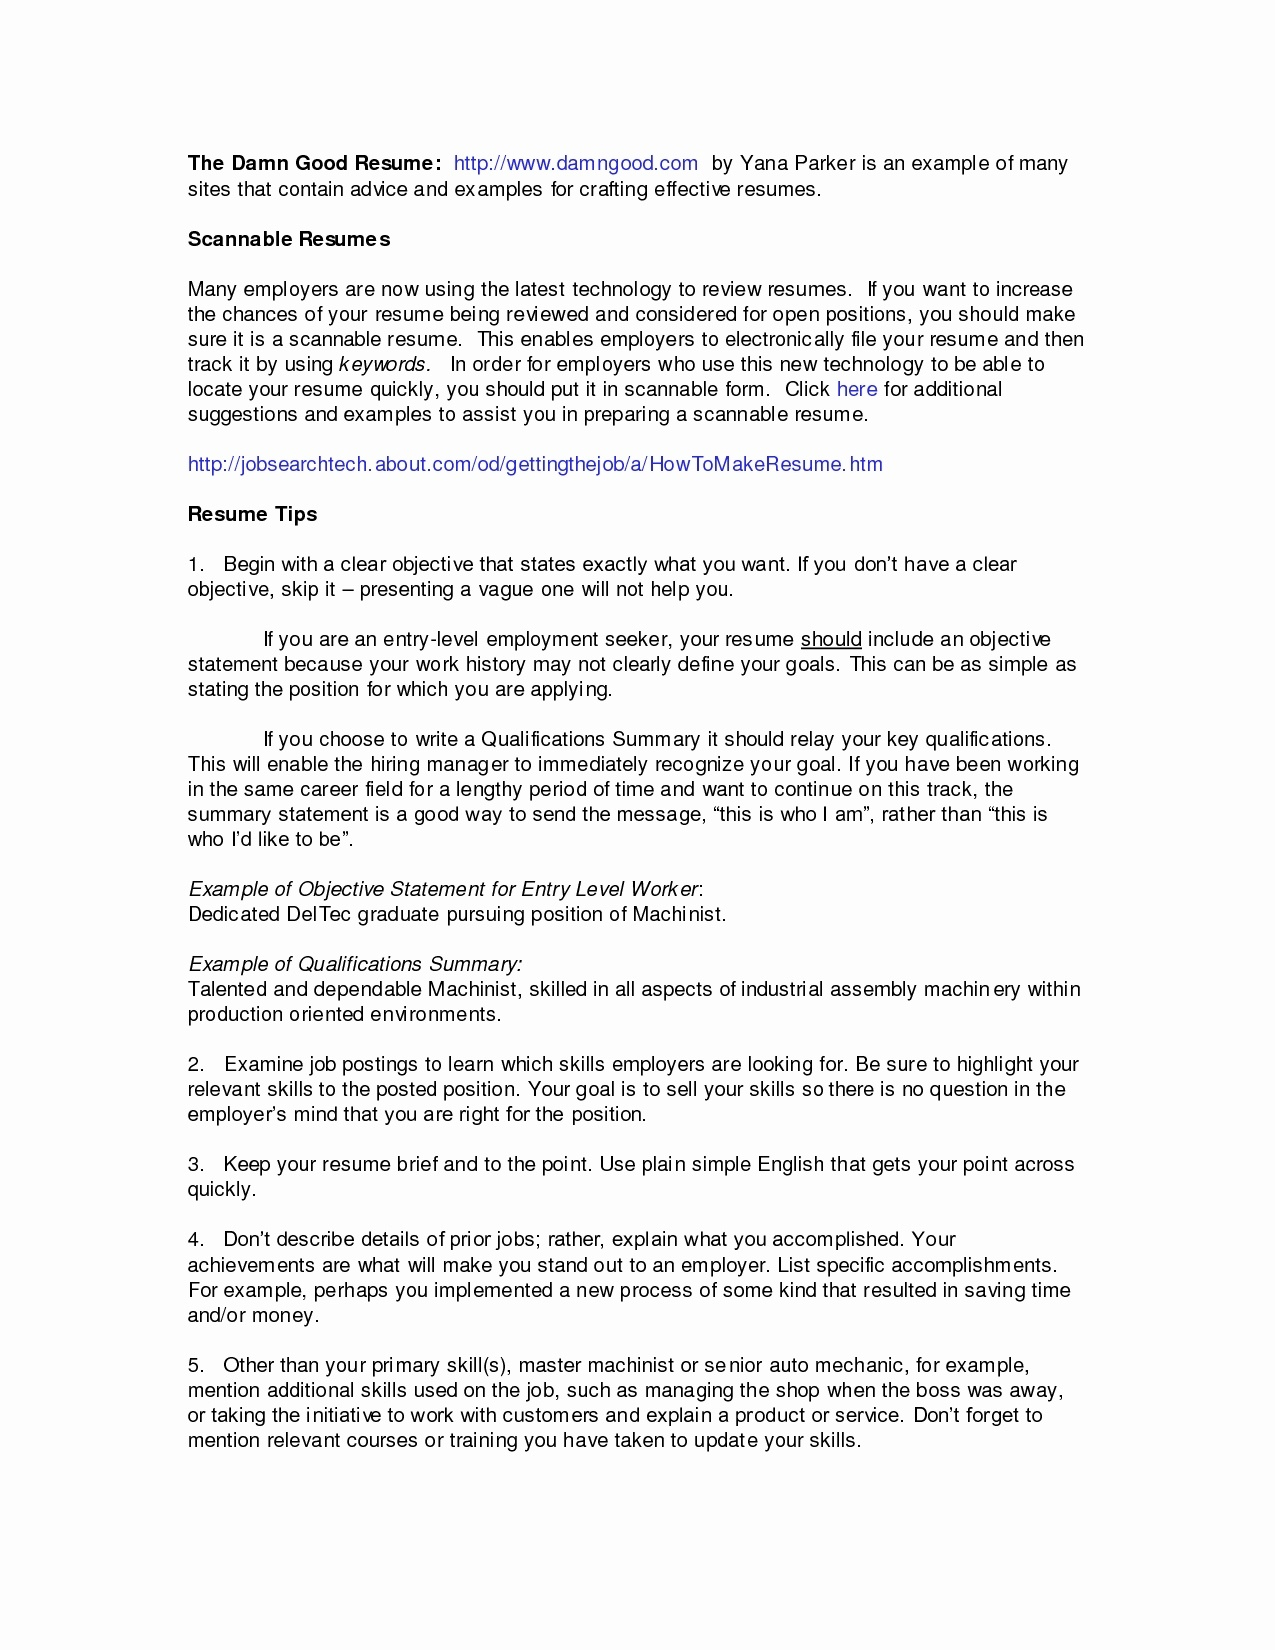 Hobbies for Resume - Interest Section Resume Examples Fresh Sample Hobbies and